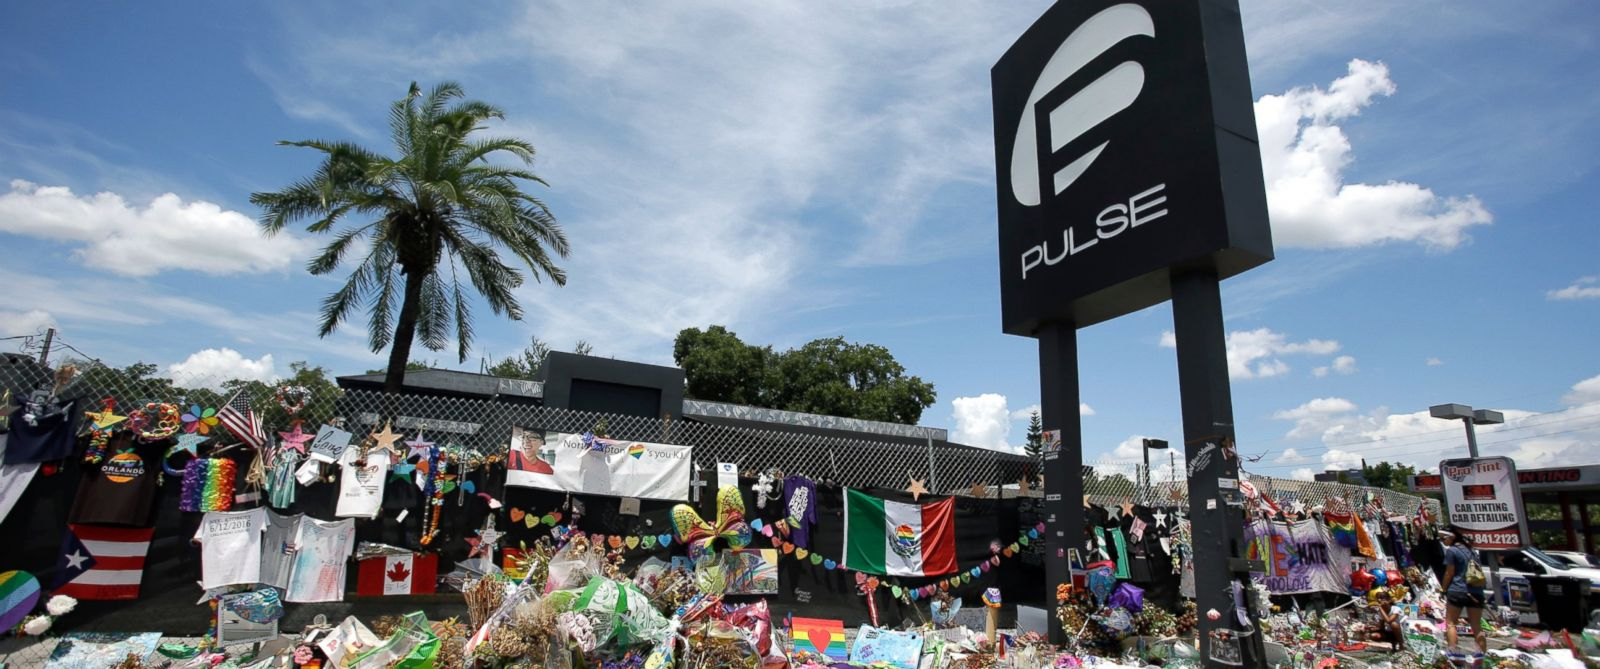 PHOTO: Photo taken shows a makeshift memorial outside the Pulse nightclub in Orlando, Florida on July 11, 2016.